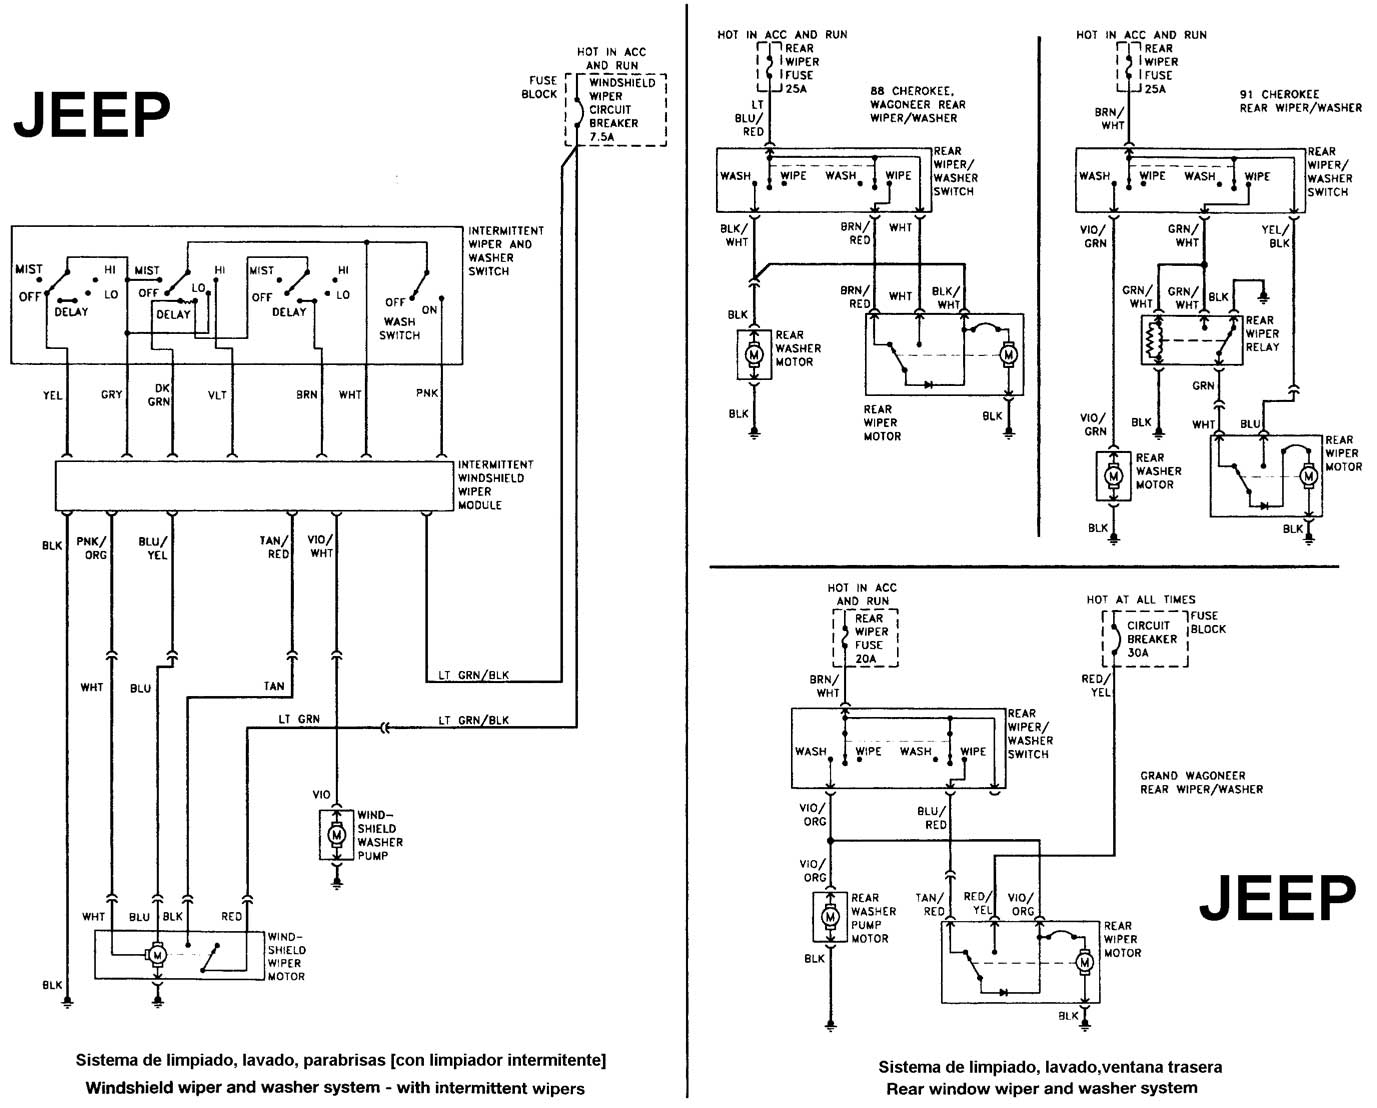 1991 Jeep Cherokee Vacuum Diagram Trusted Wiring 90 4 0l U2022 For Free 2001 Grand Line